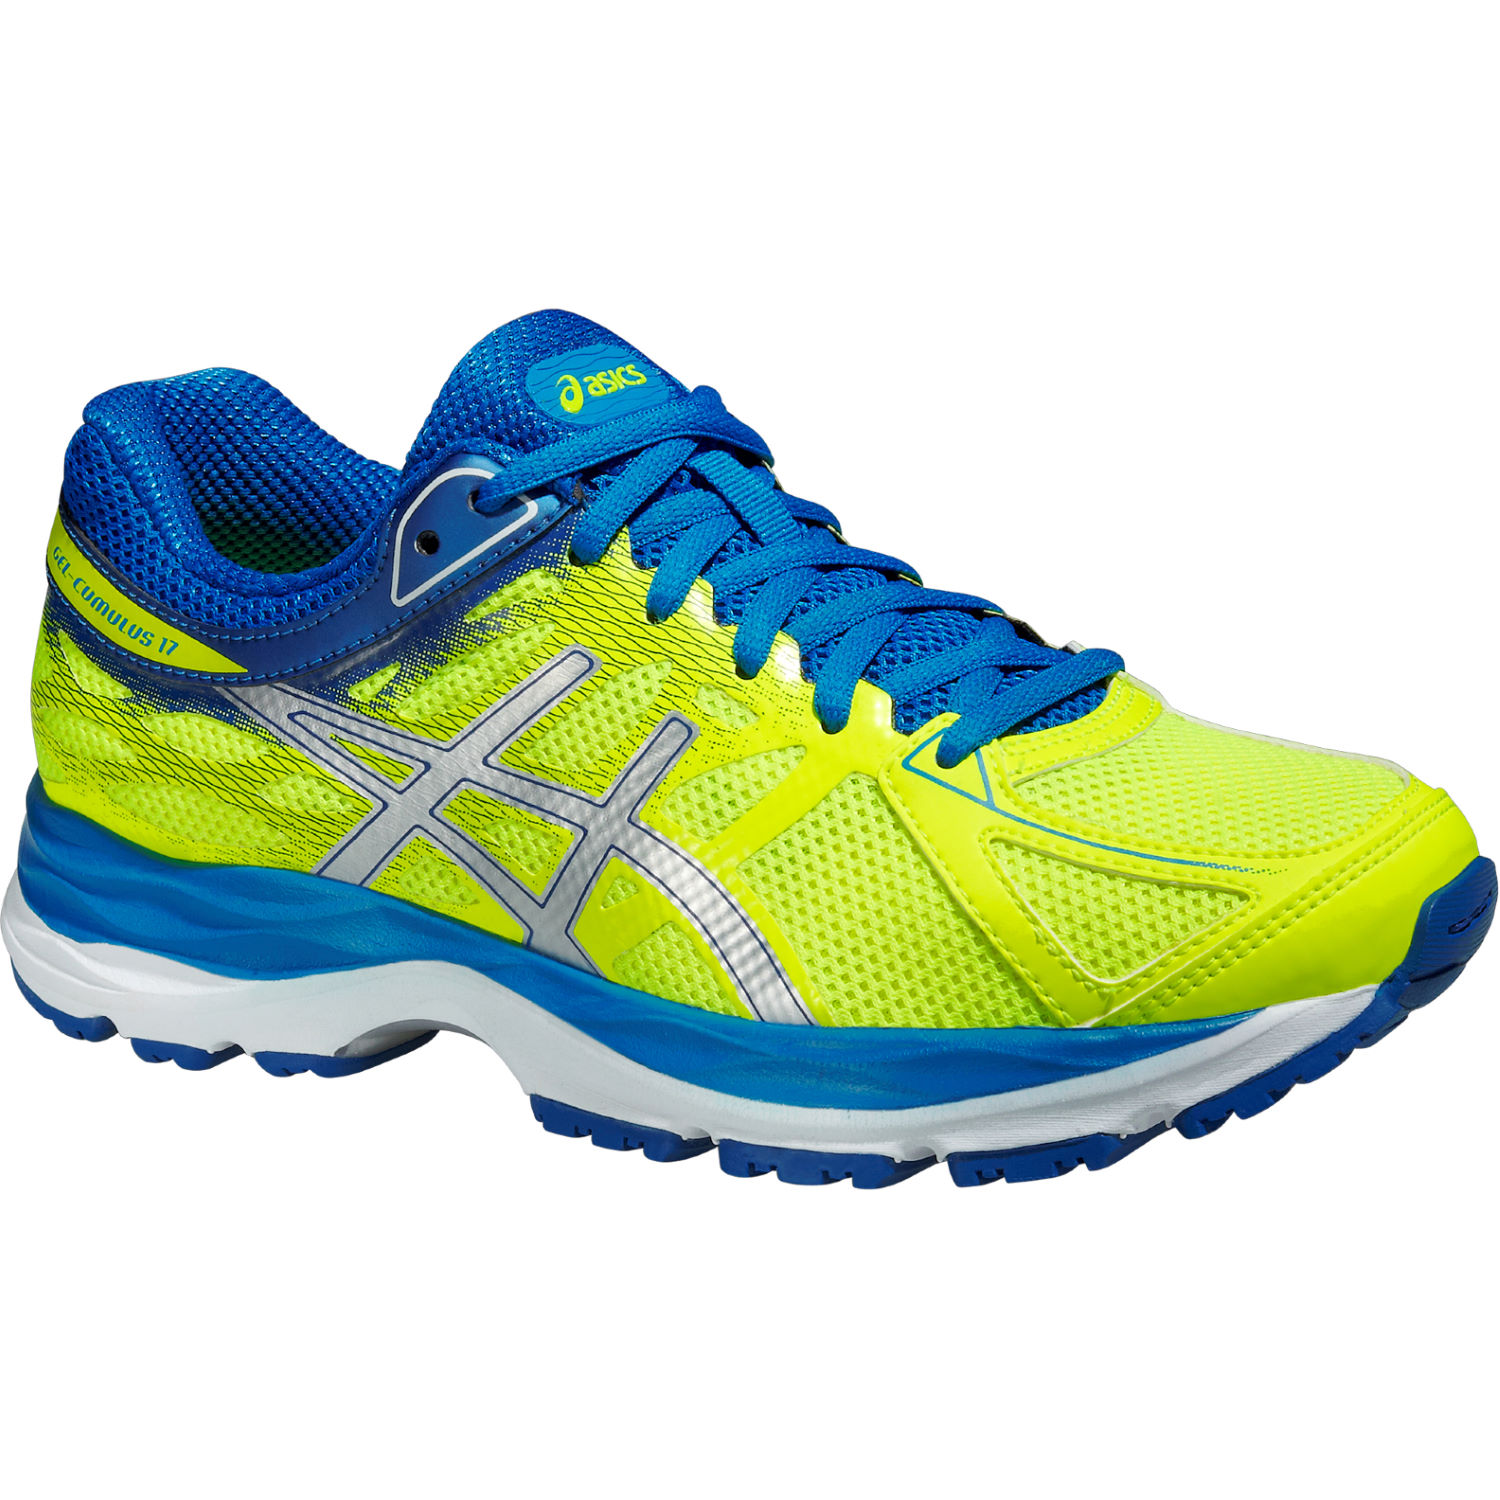 The Brooks on sale range allows you to pick up cheap running shoes for women without having to forego quality. Our wide variety of bargain footwear designs includes trail running, extra support, extra lightweight, cross-training, kids, and more.